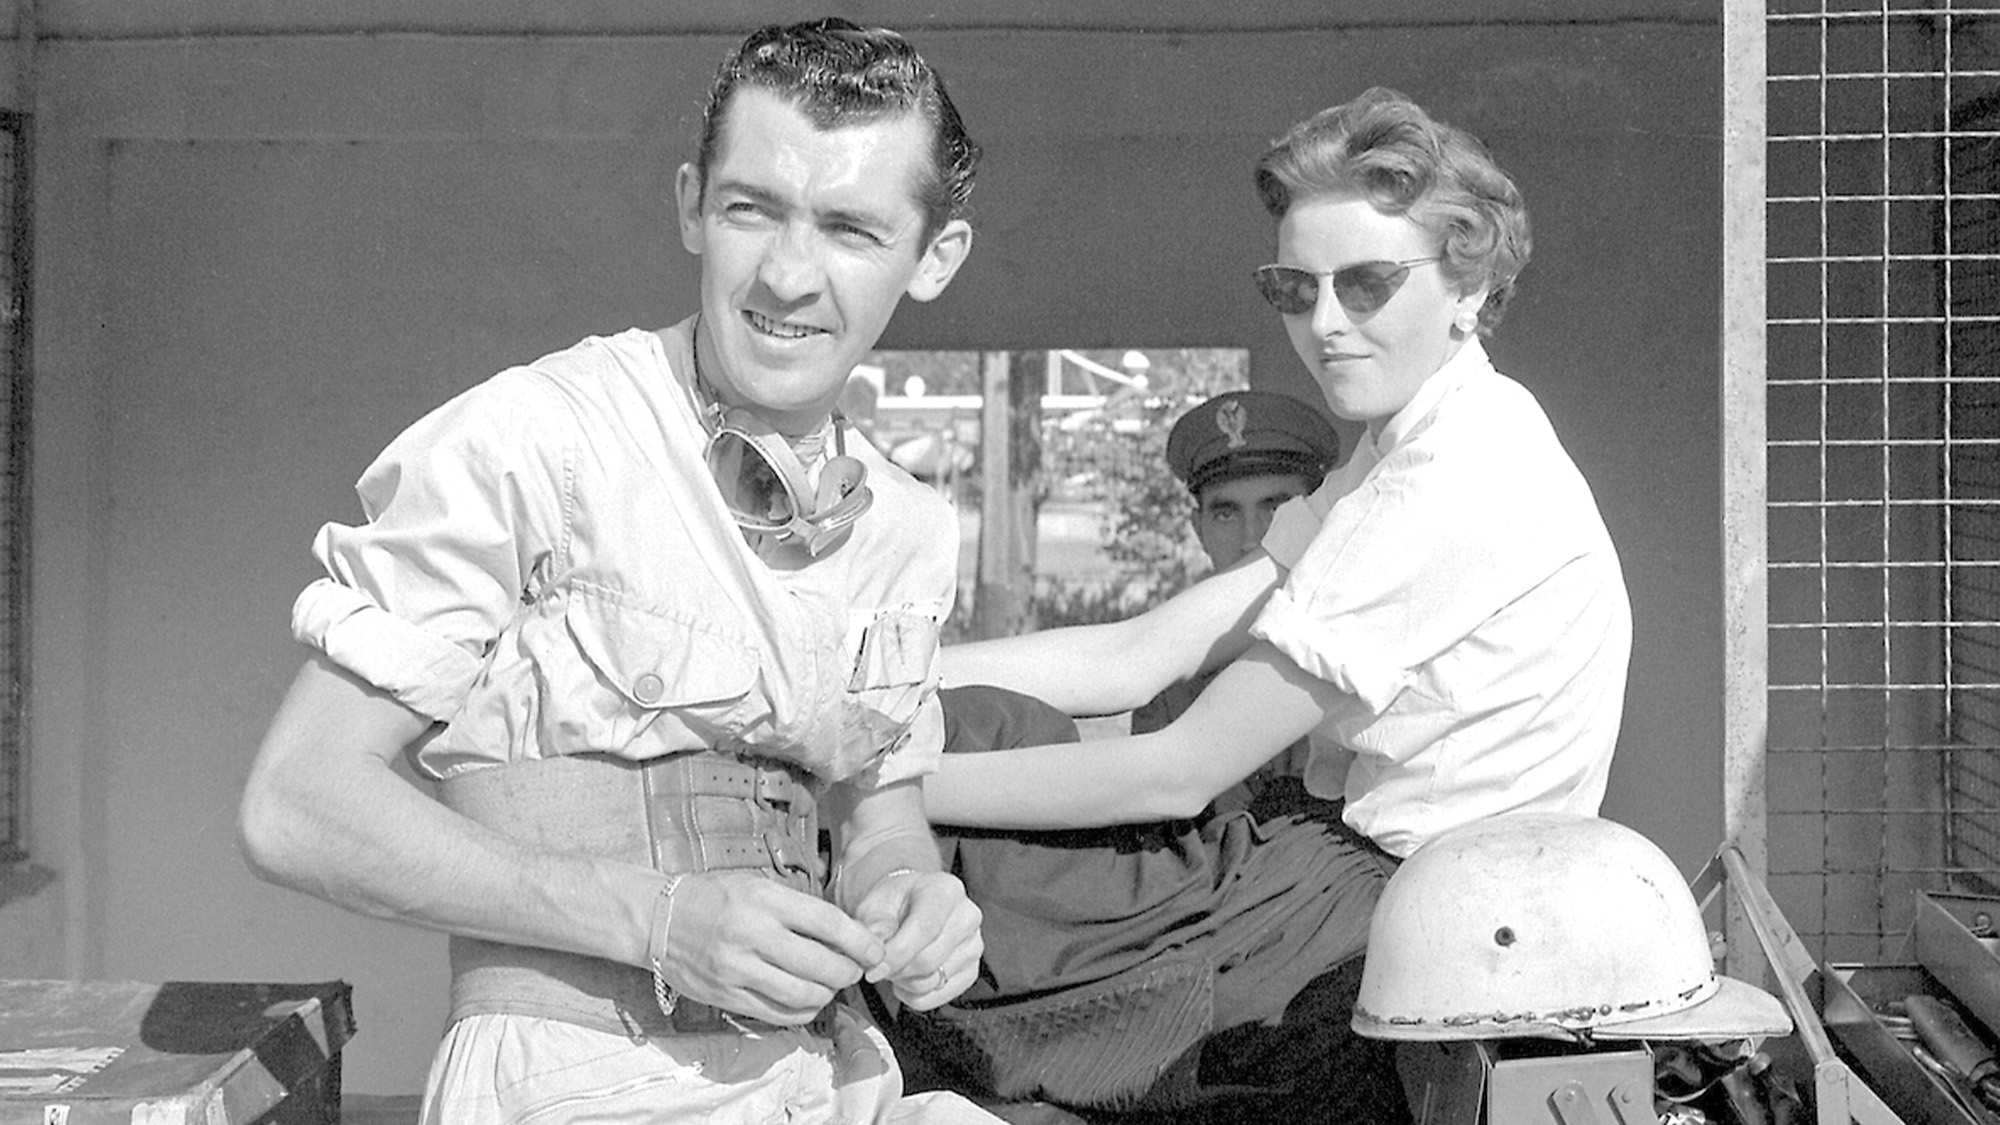 Stuart Lewis-Evans with a girlfriend in the pits at Monza ahead of the 1958 Italian Grand Prix